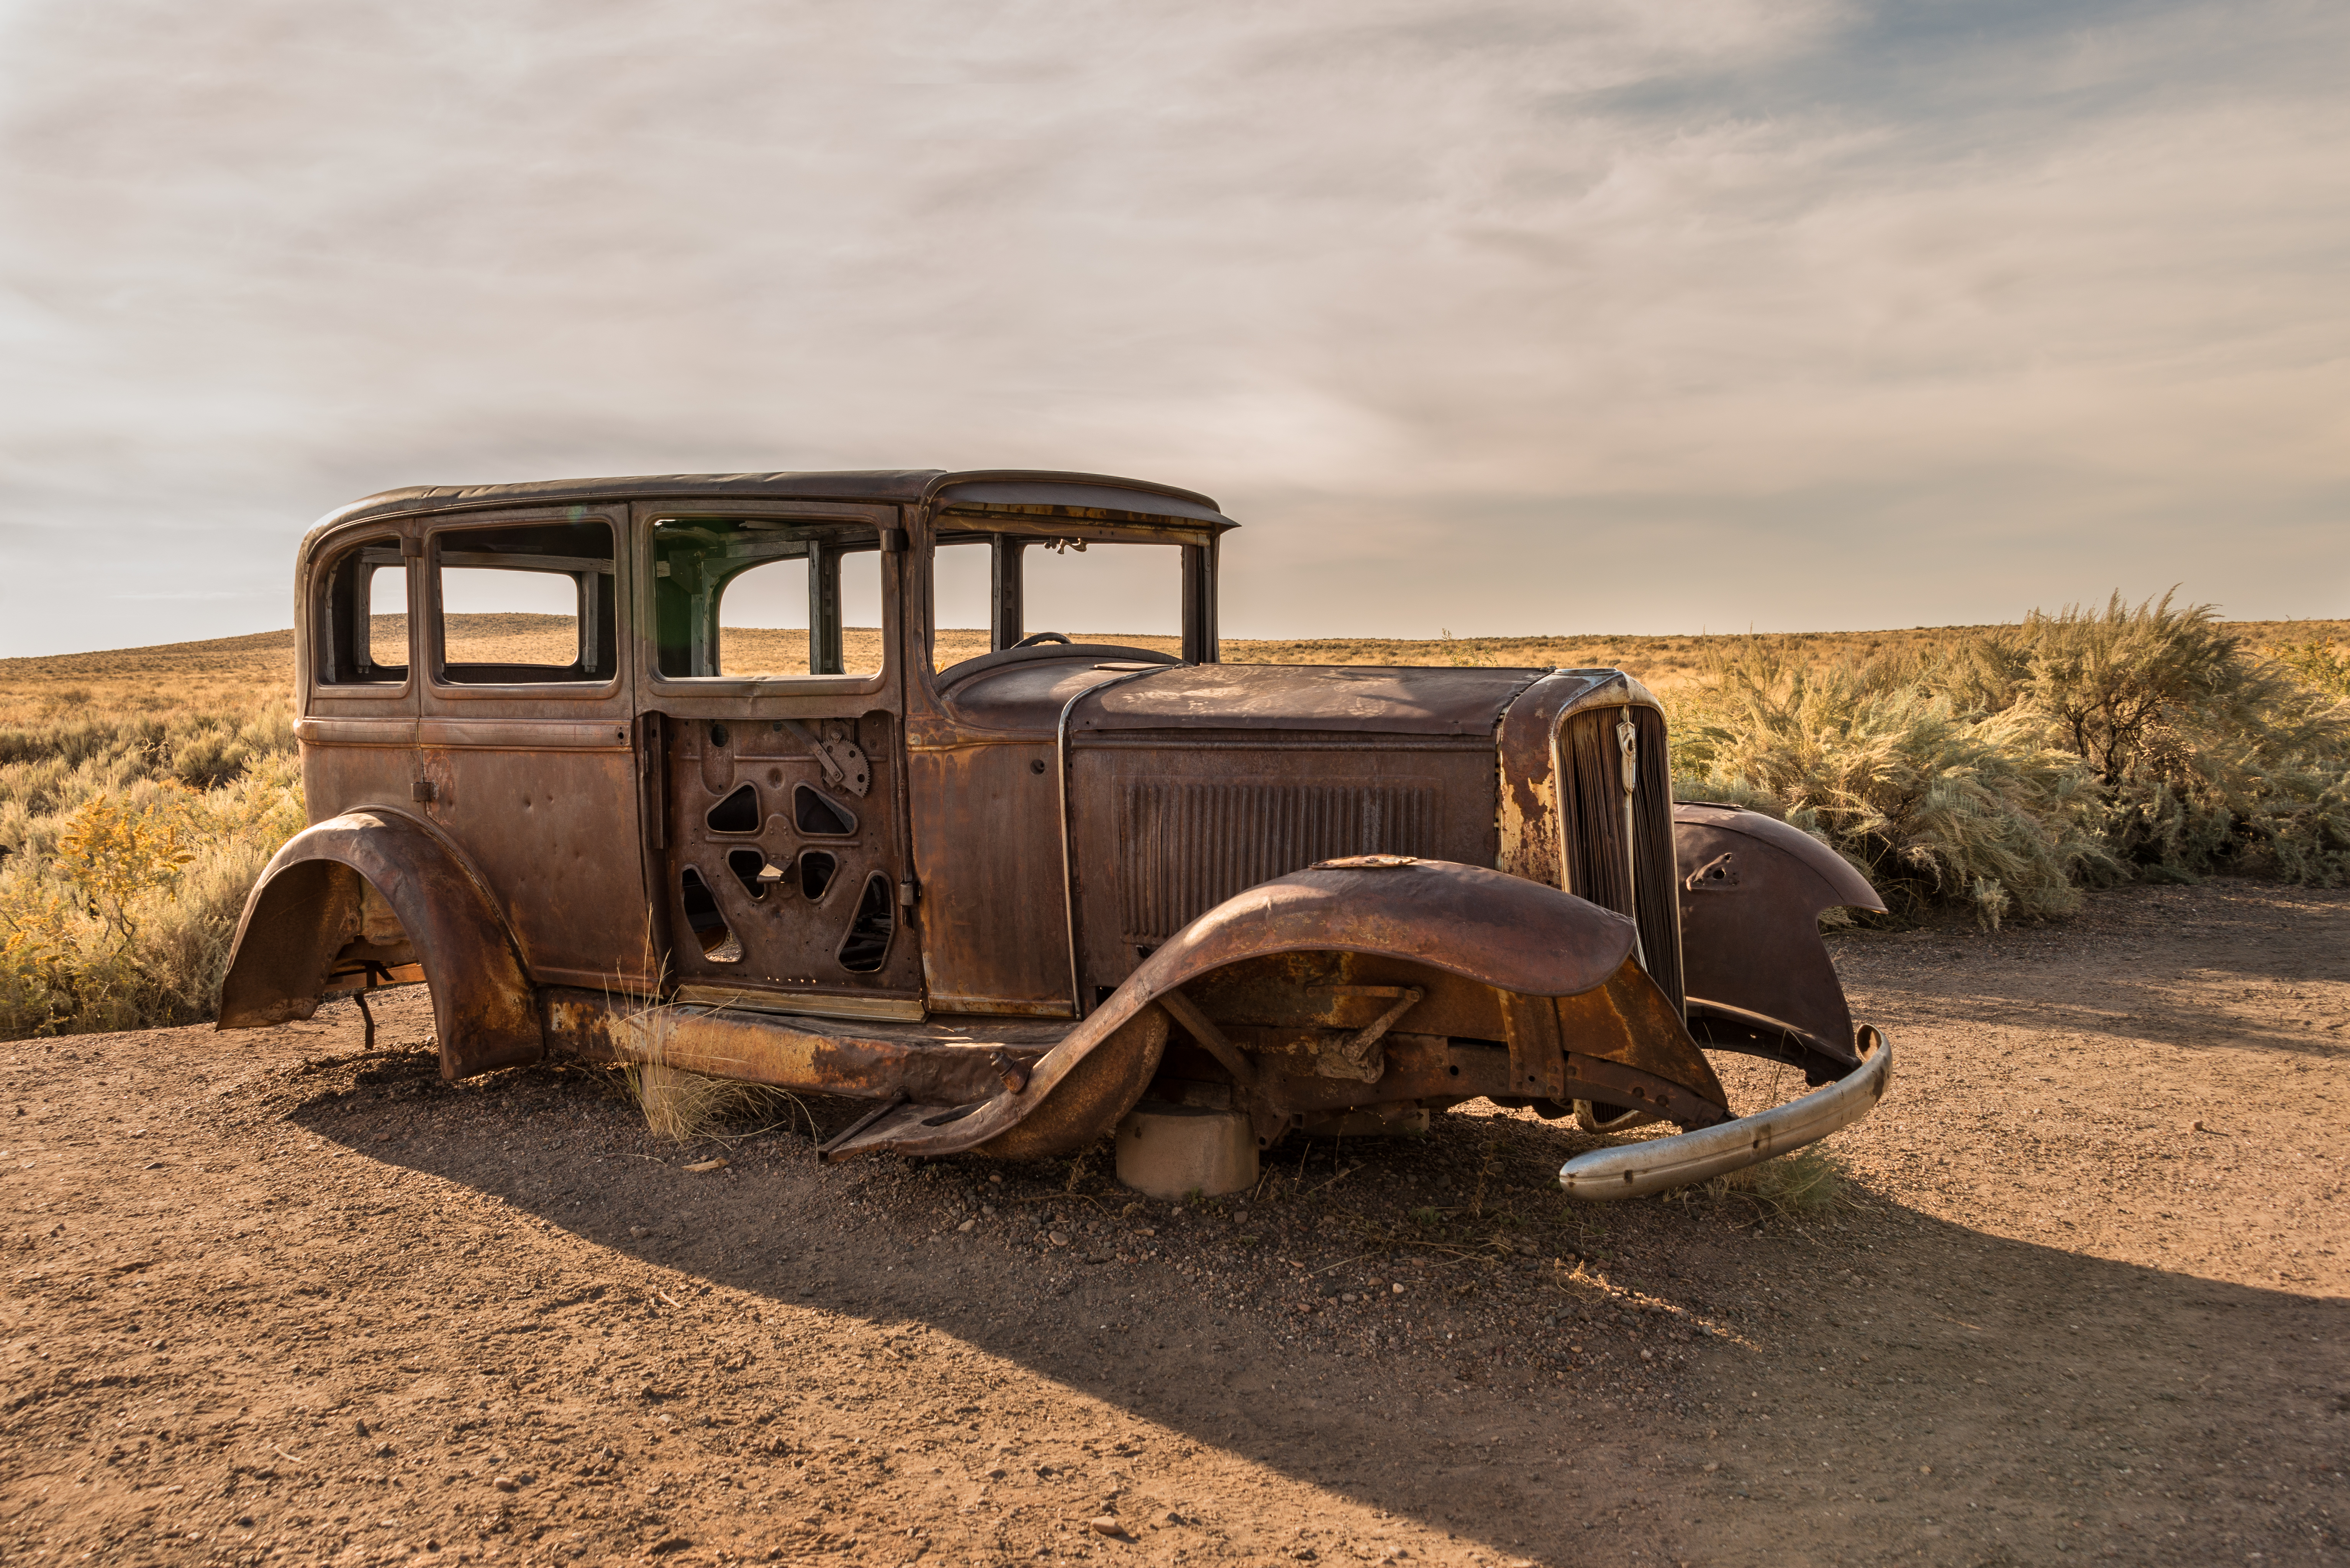 Abandoned on Route 66